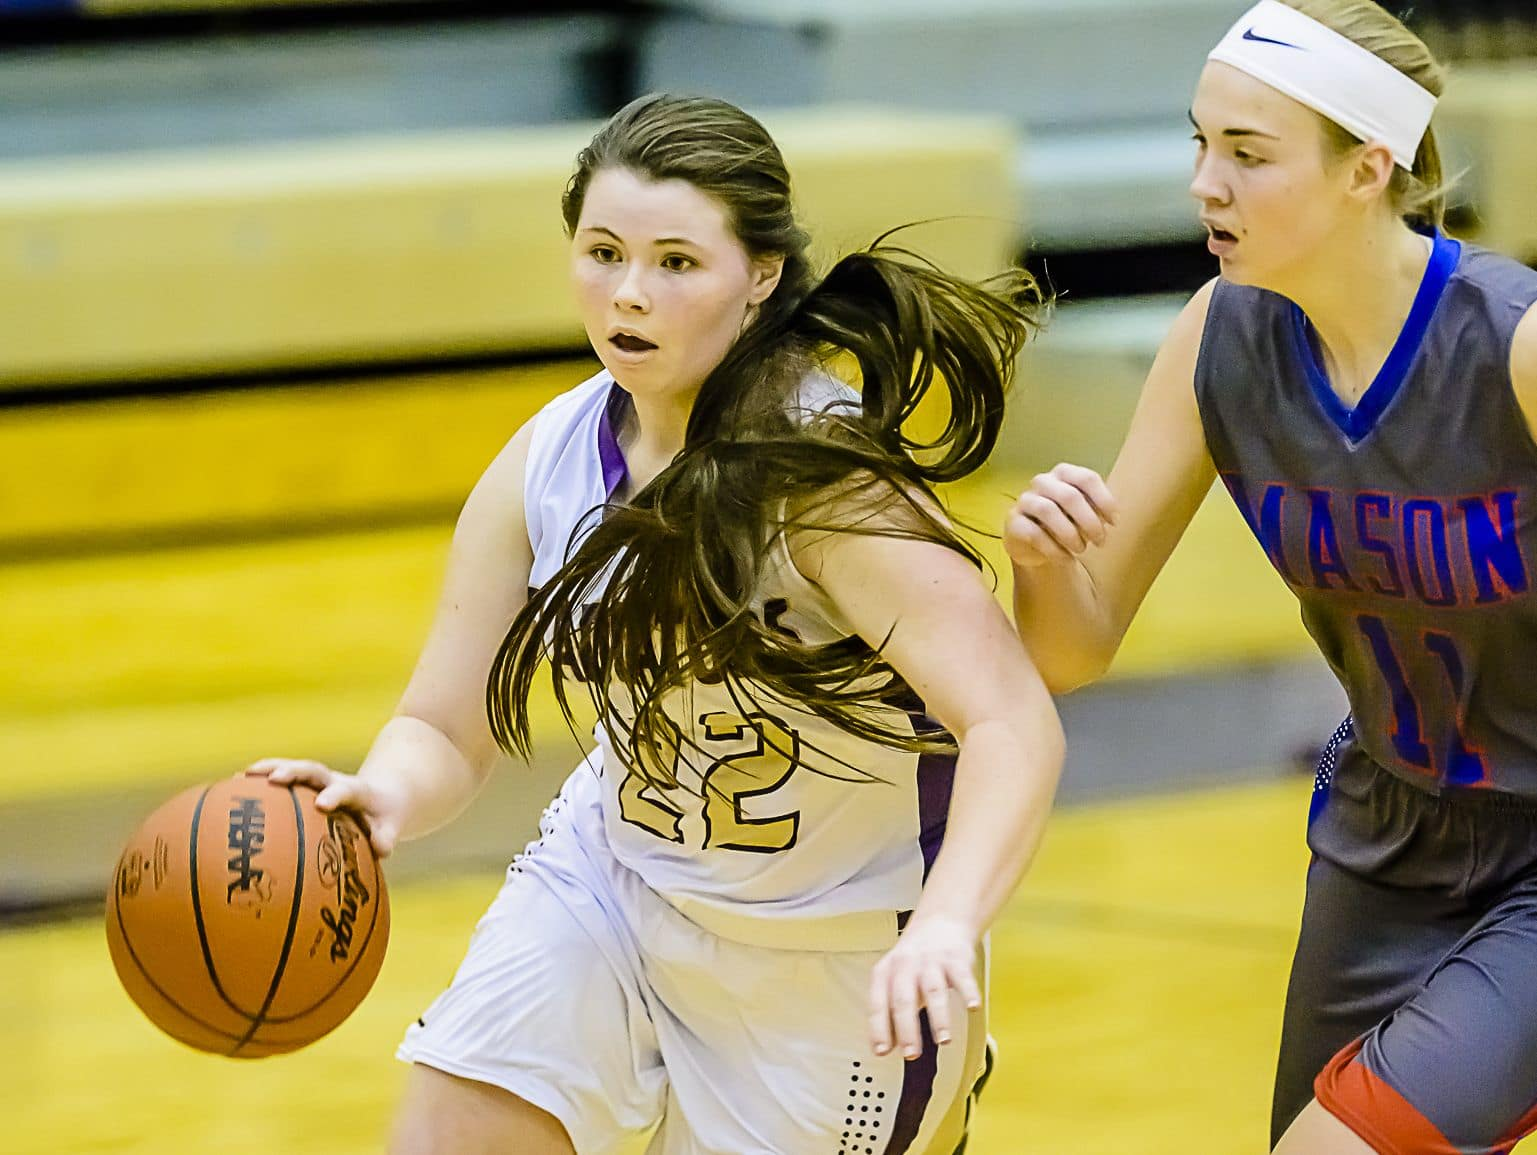 Jackie Jarvis (22) had 23 points for Fowlerville in an upset of No. 9 Bay City John Glenn.